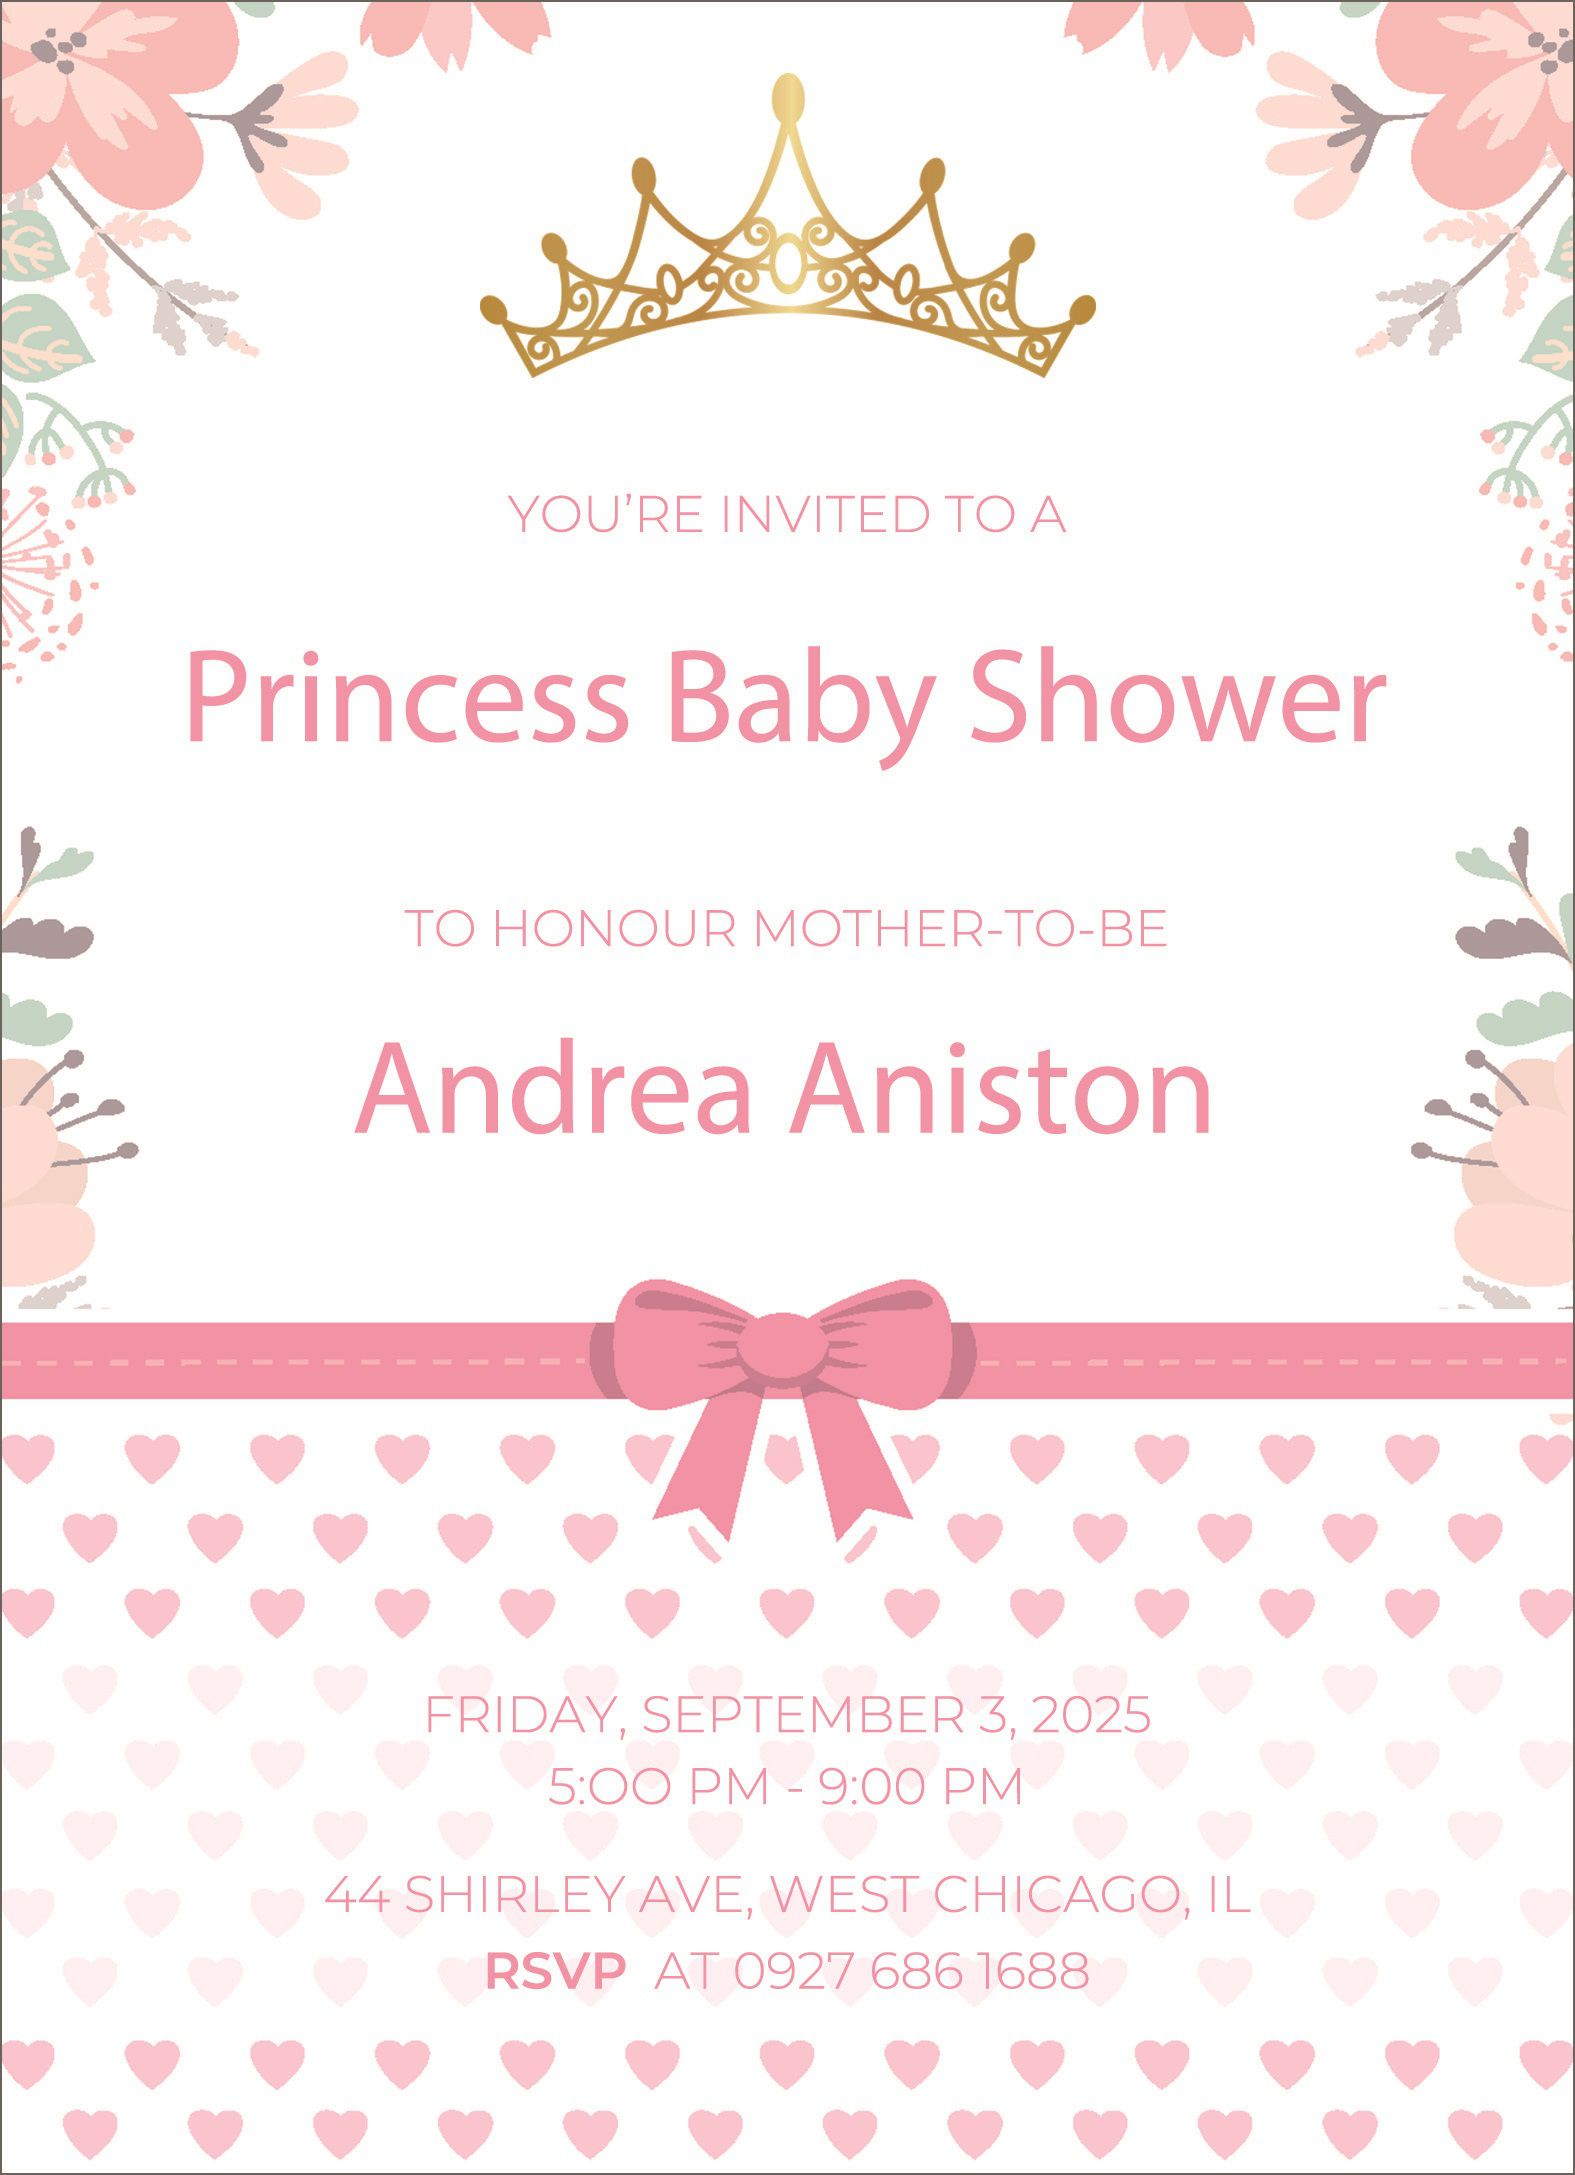 003 Formidable Baby Shower Invitation Free Template Picture  Templates Online Printable E-invitation Card Design DownloadFull